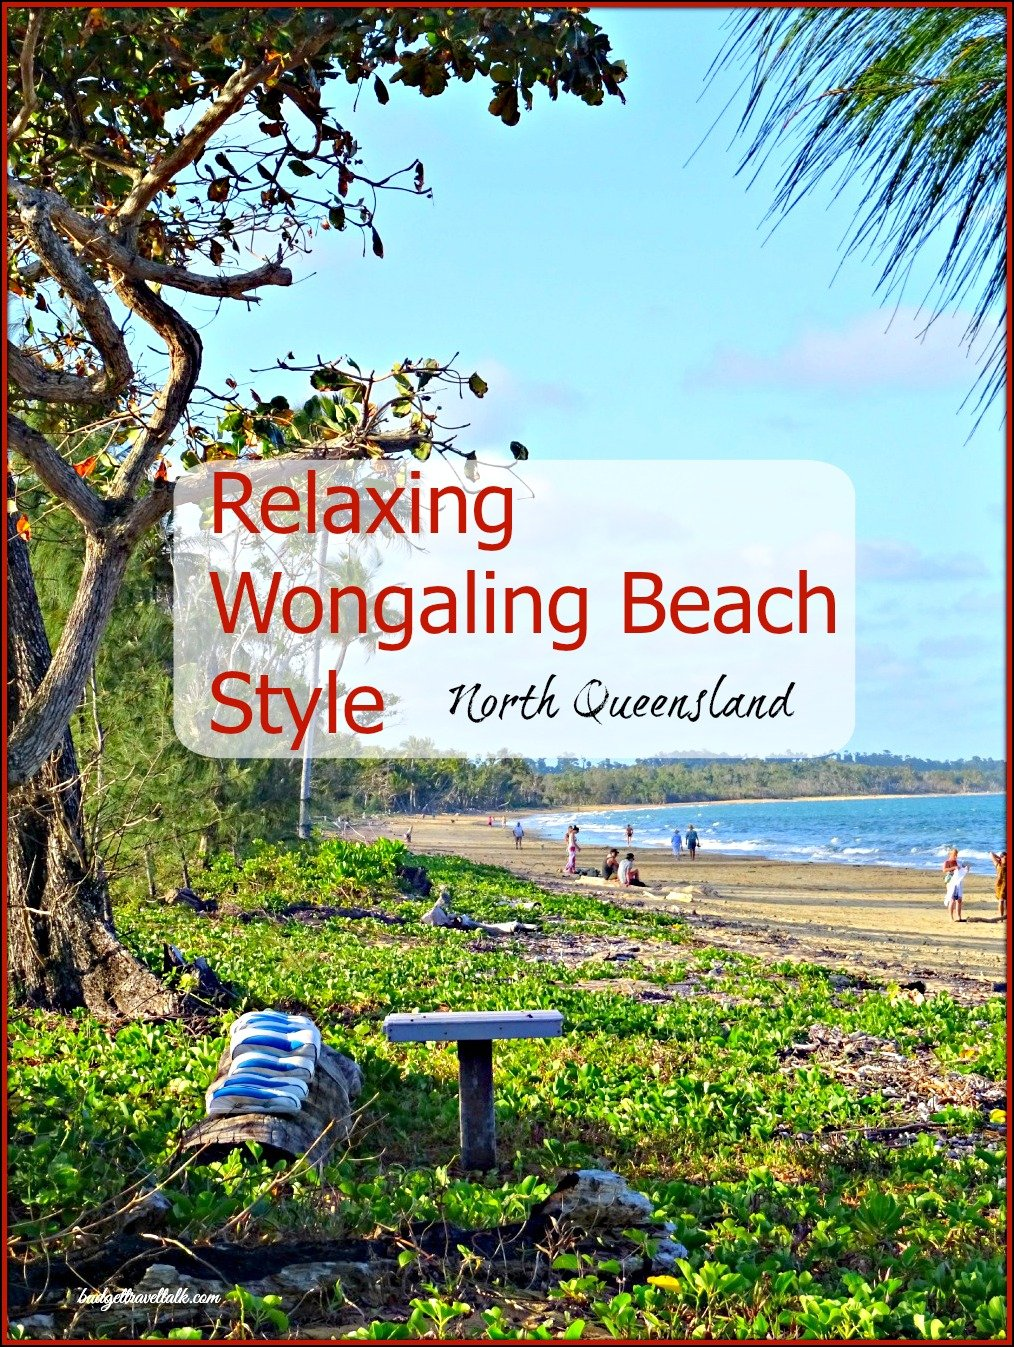 Relaxing Wongaling Beach Style North Queensland